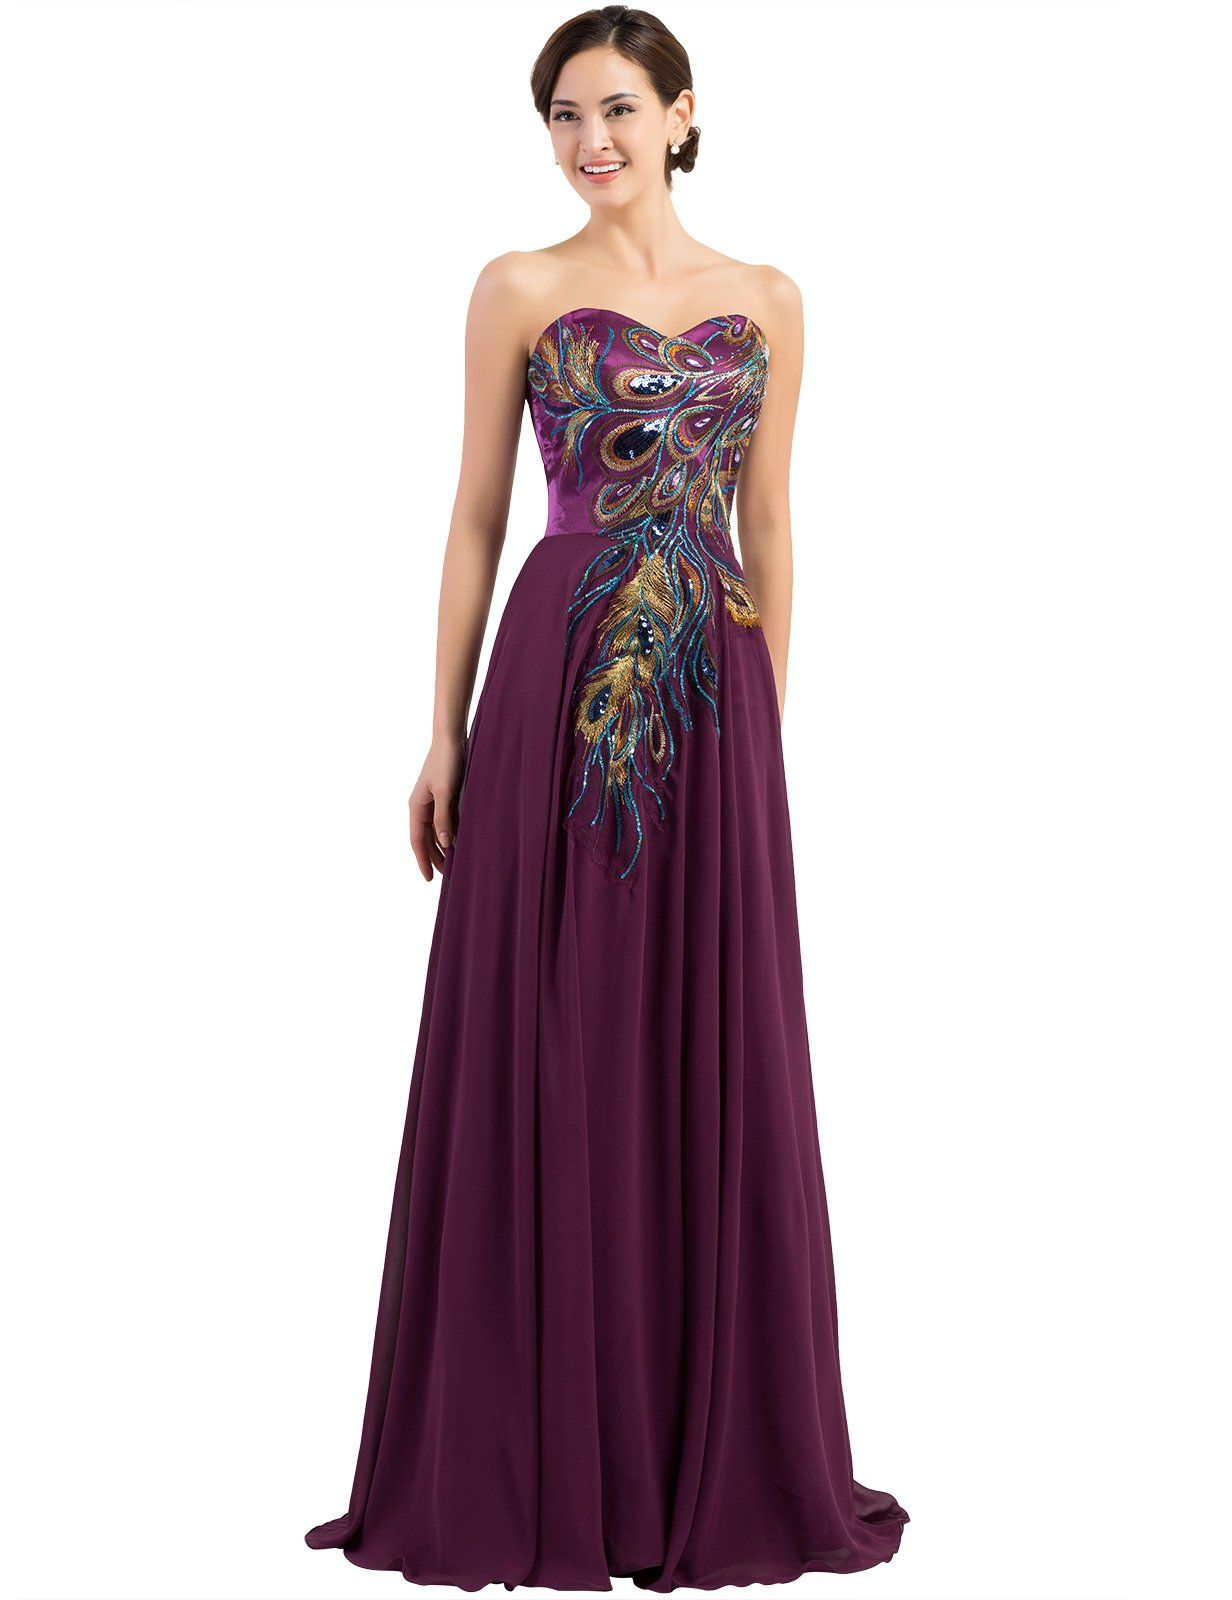 5c71c05ca6007 GRACE KARIN® Long Strapless Embroidery Prom Dress A-line CL6168 ...